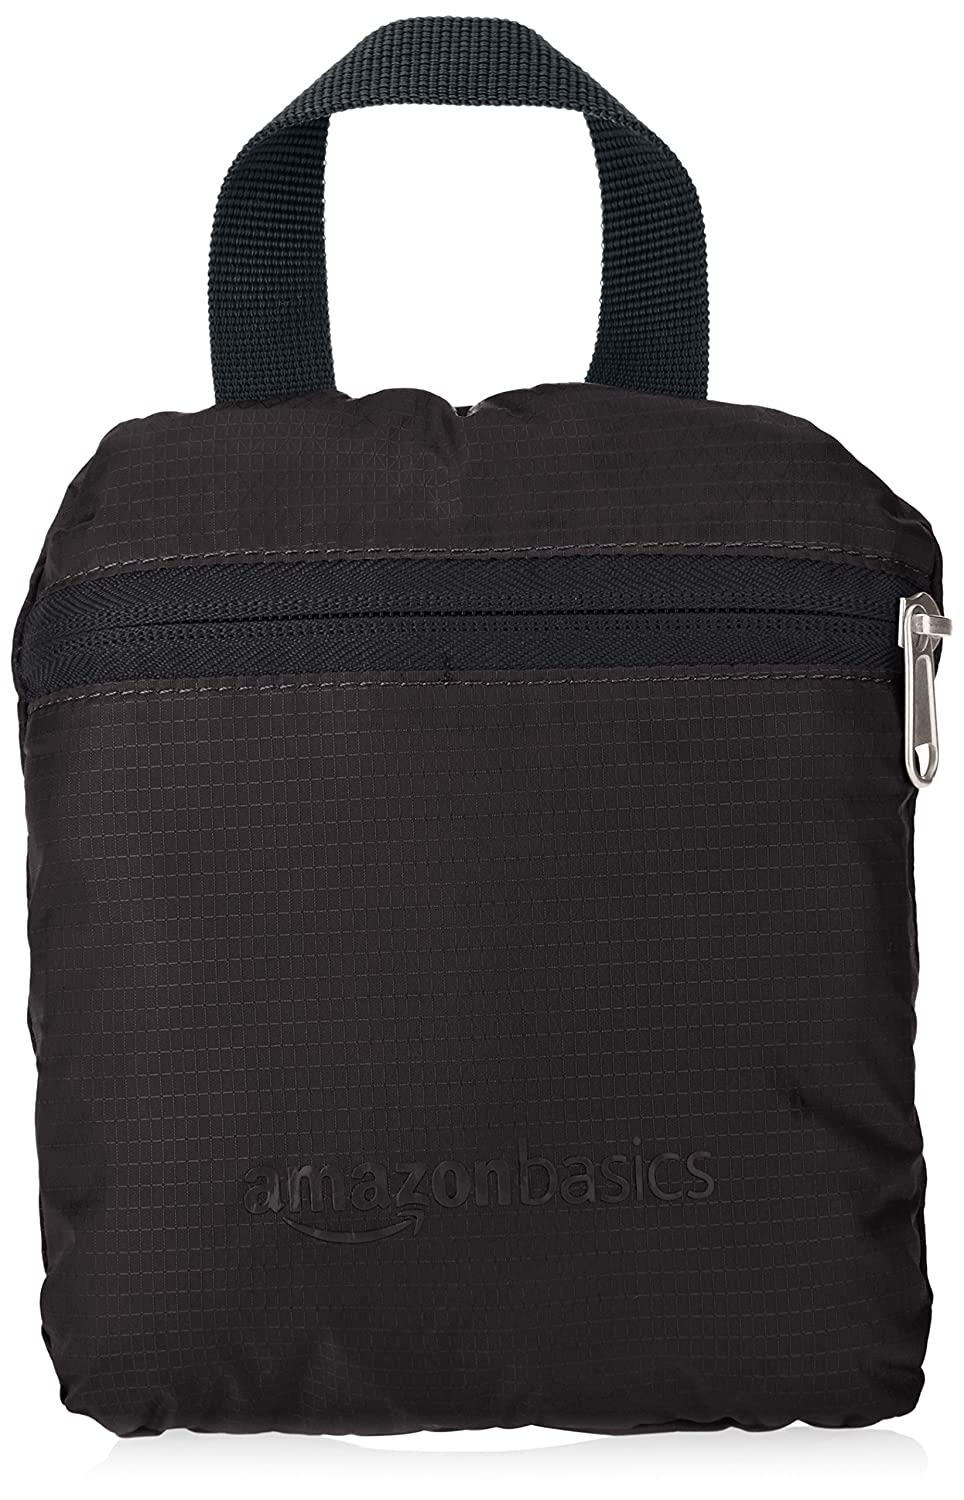 aed5dc9c308d AmazonBasics Ultra thin Foldable Day Pack - Black